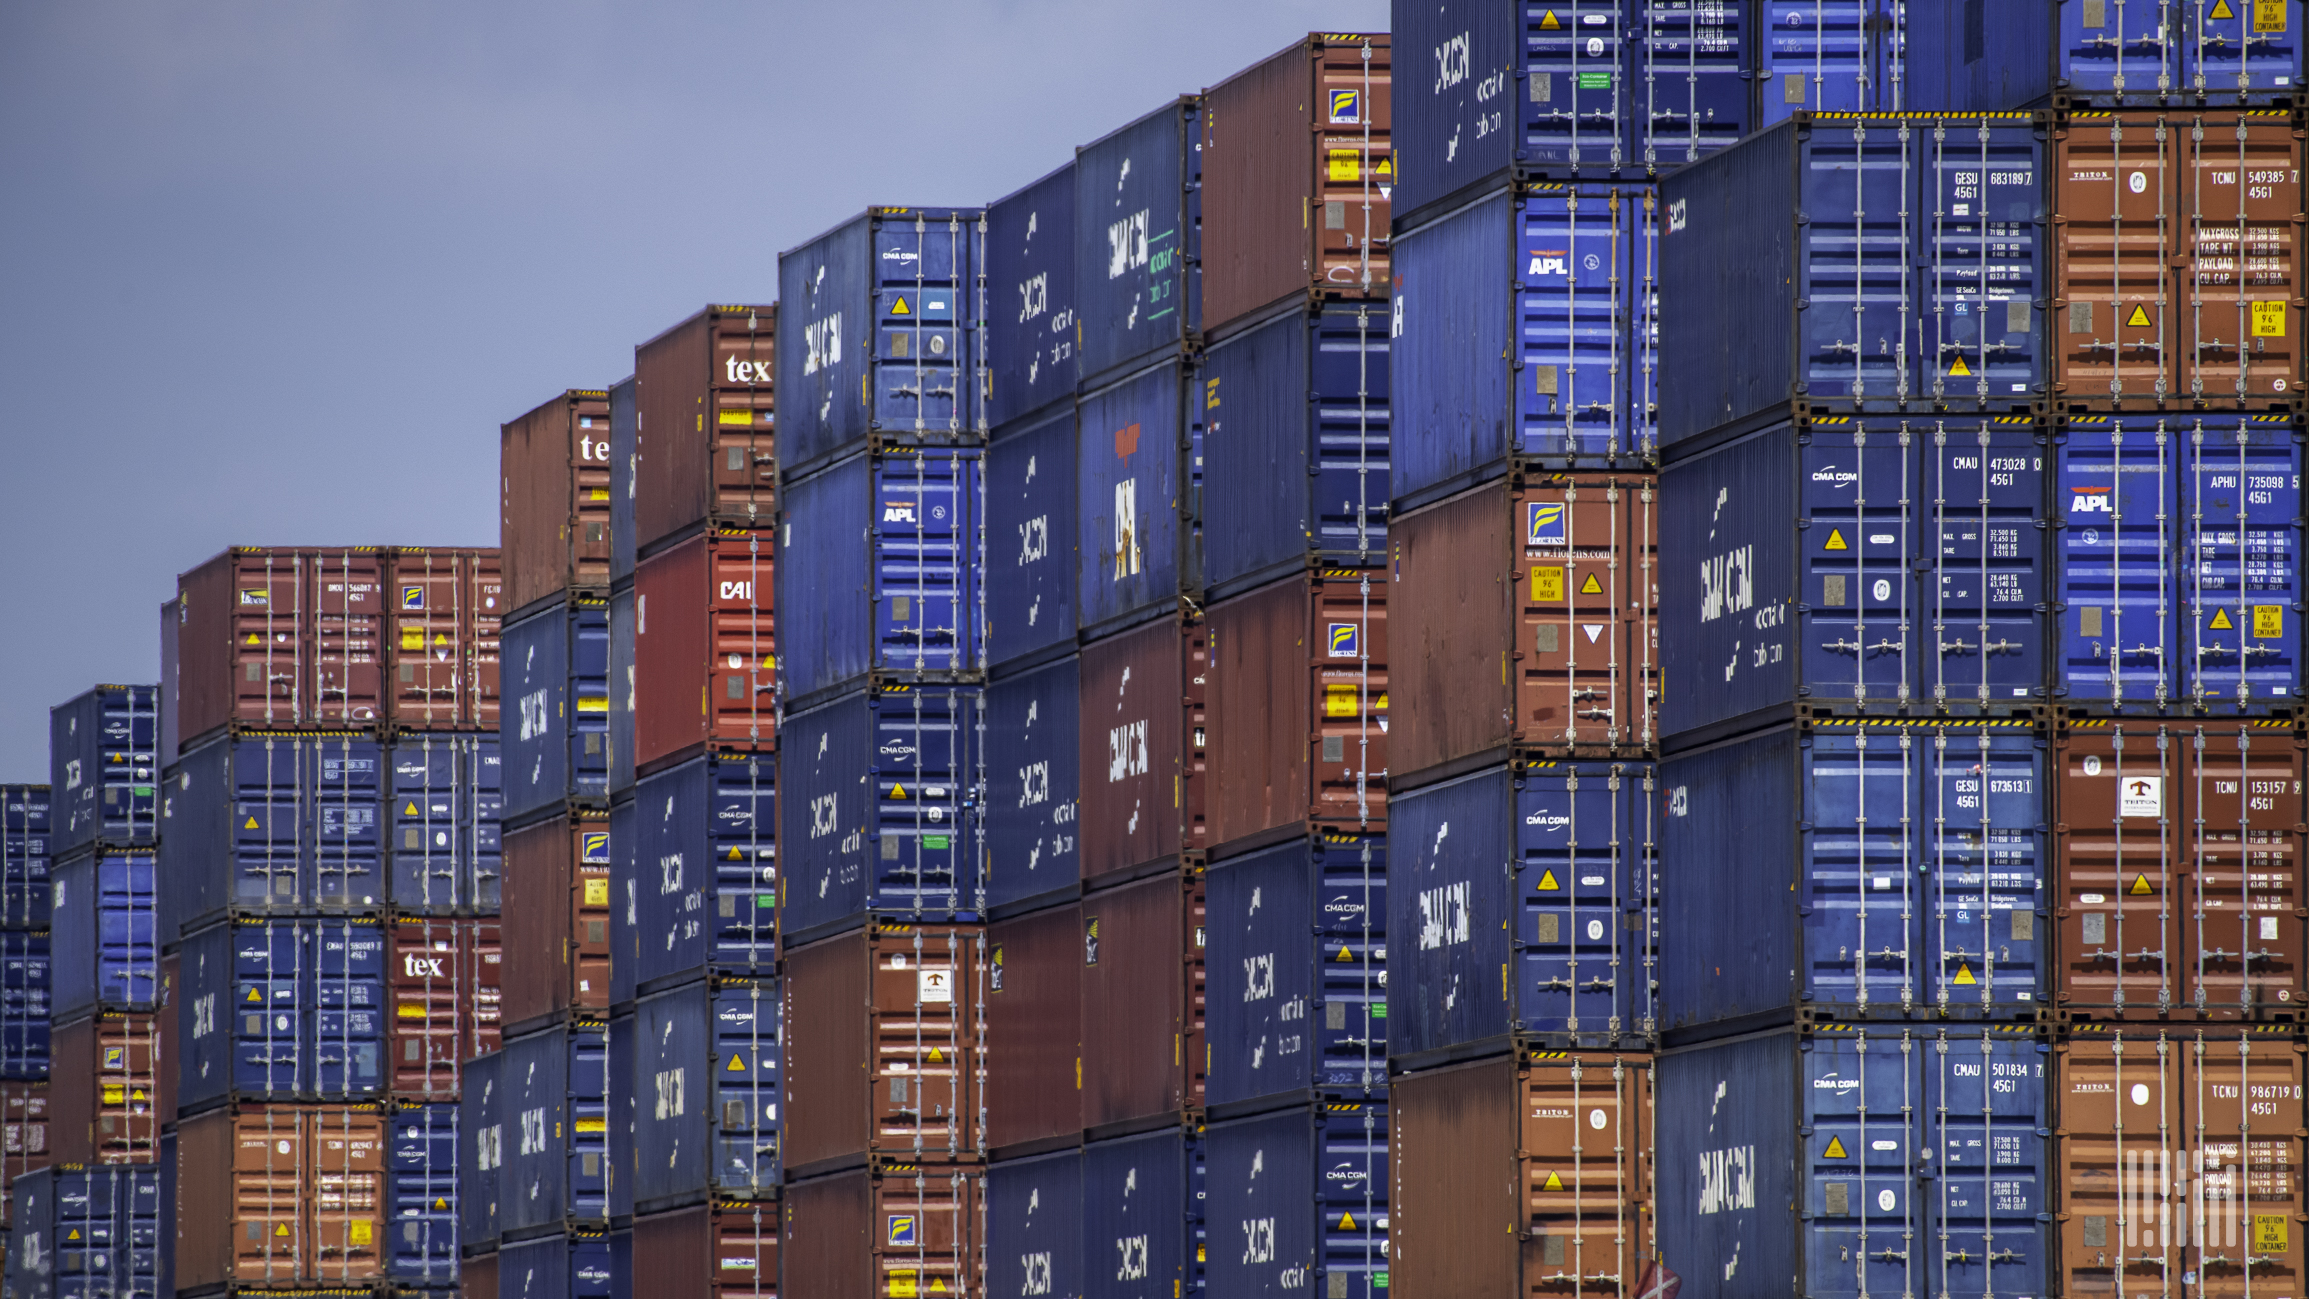 Freight continues to roll in amid capacity shortages